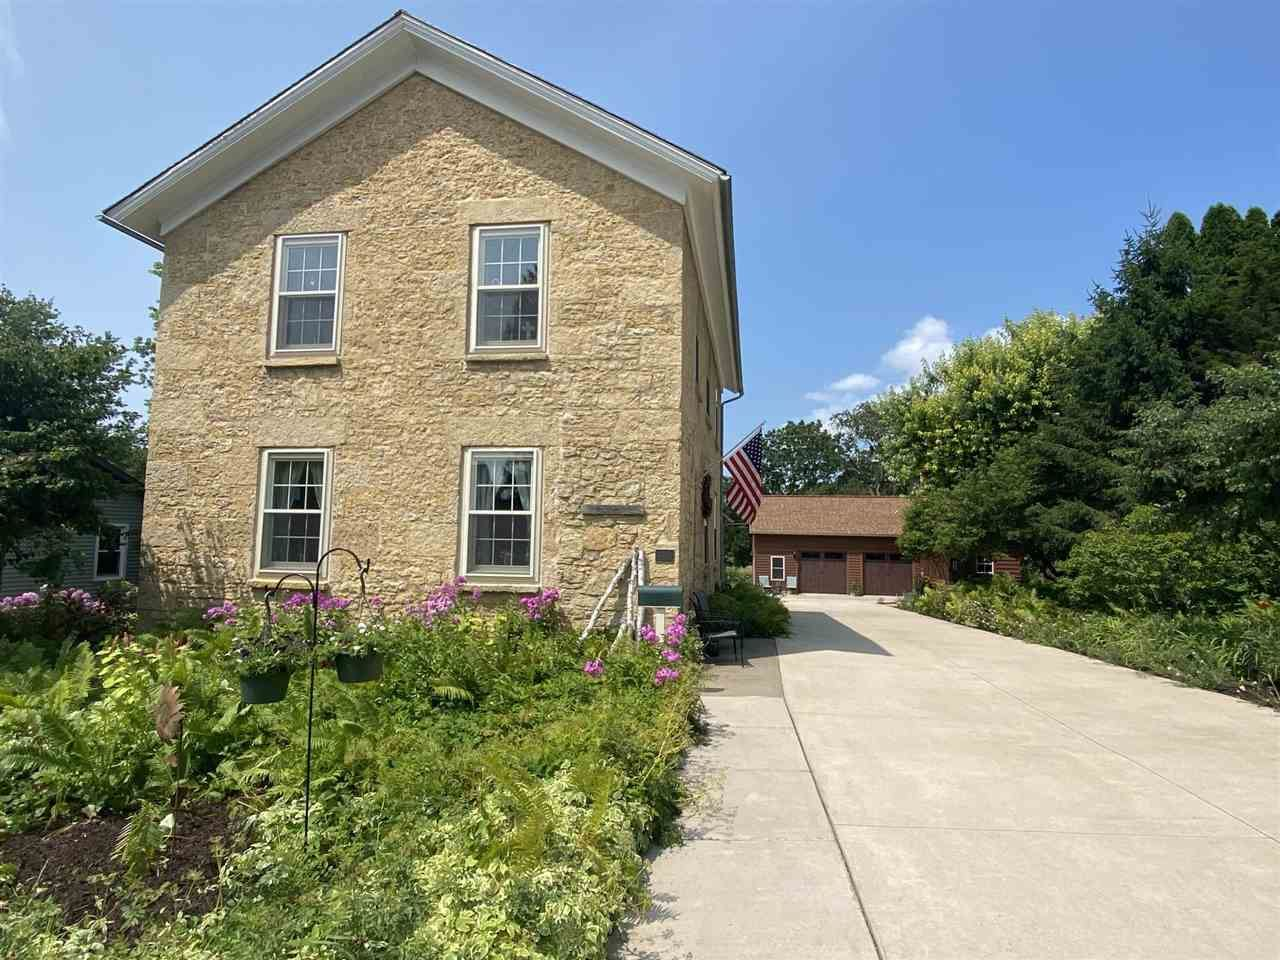 914 N Bequette, Dodgeville, WI 53530 - #: 1915413